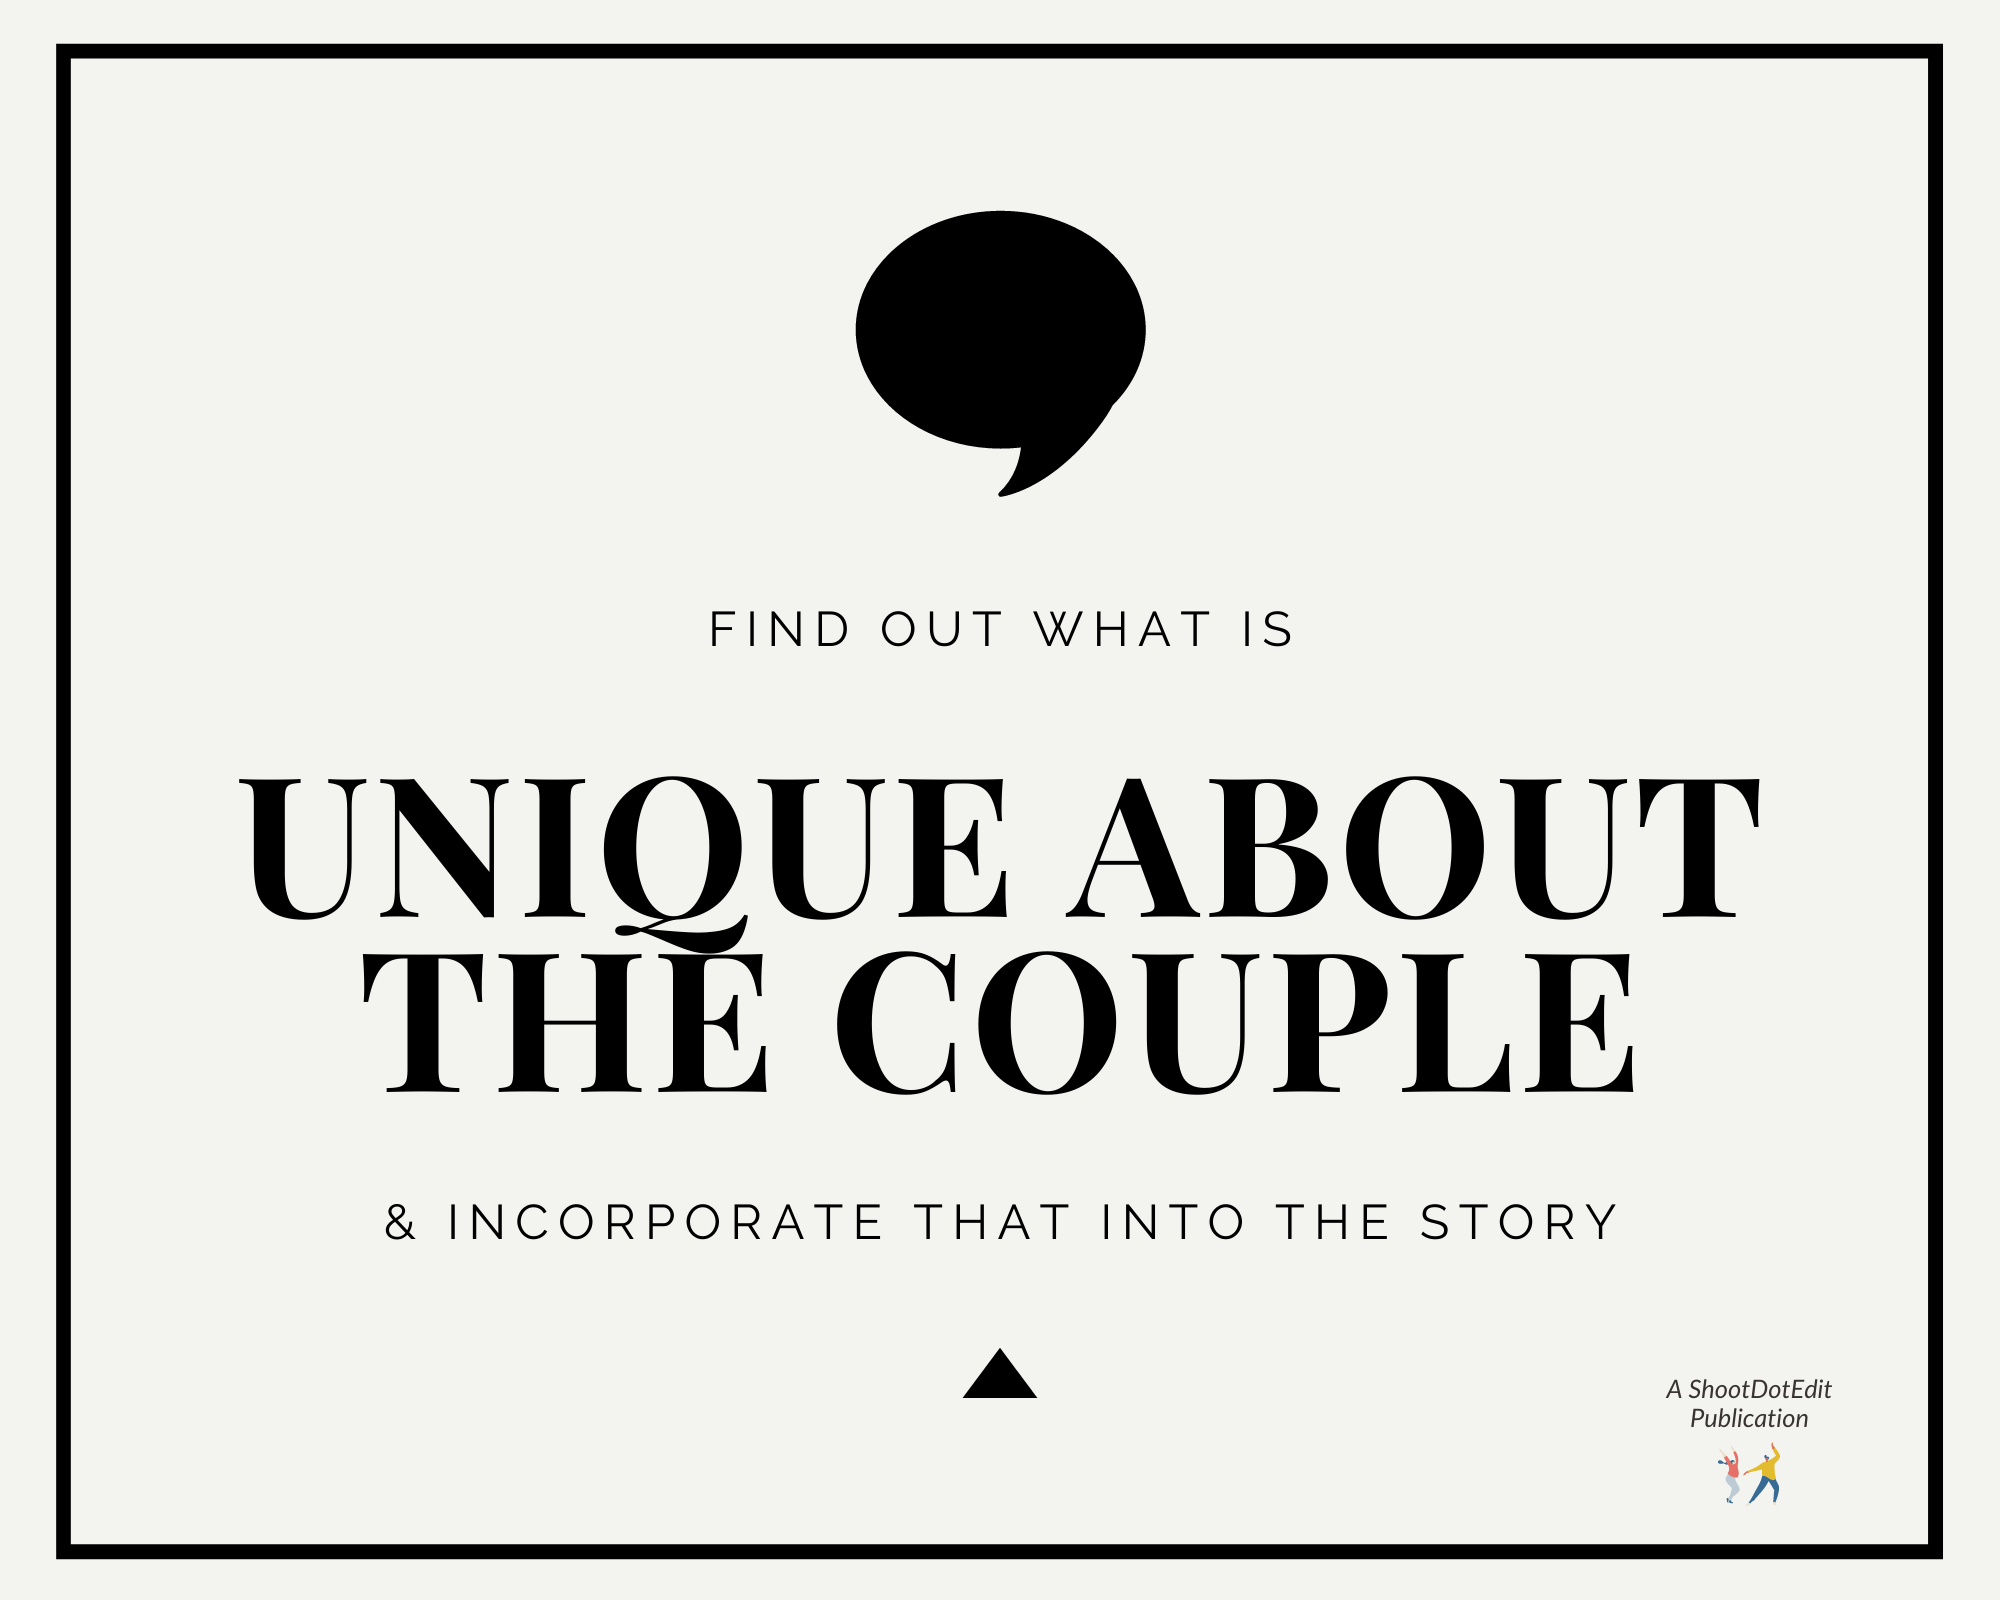 Infographic stating find out what is unique about the couple and incorporate that into the story